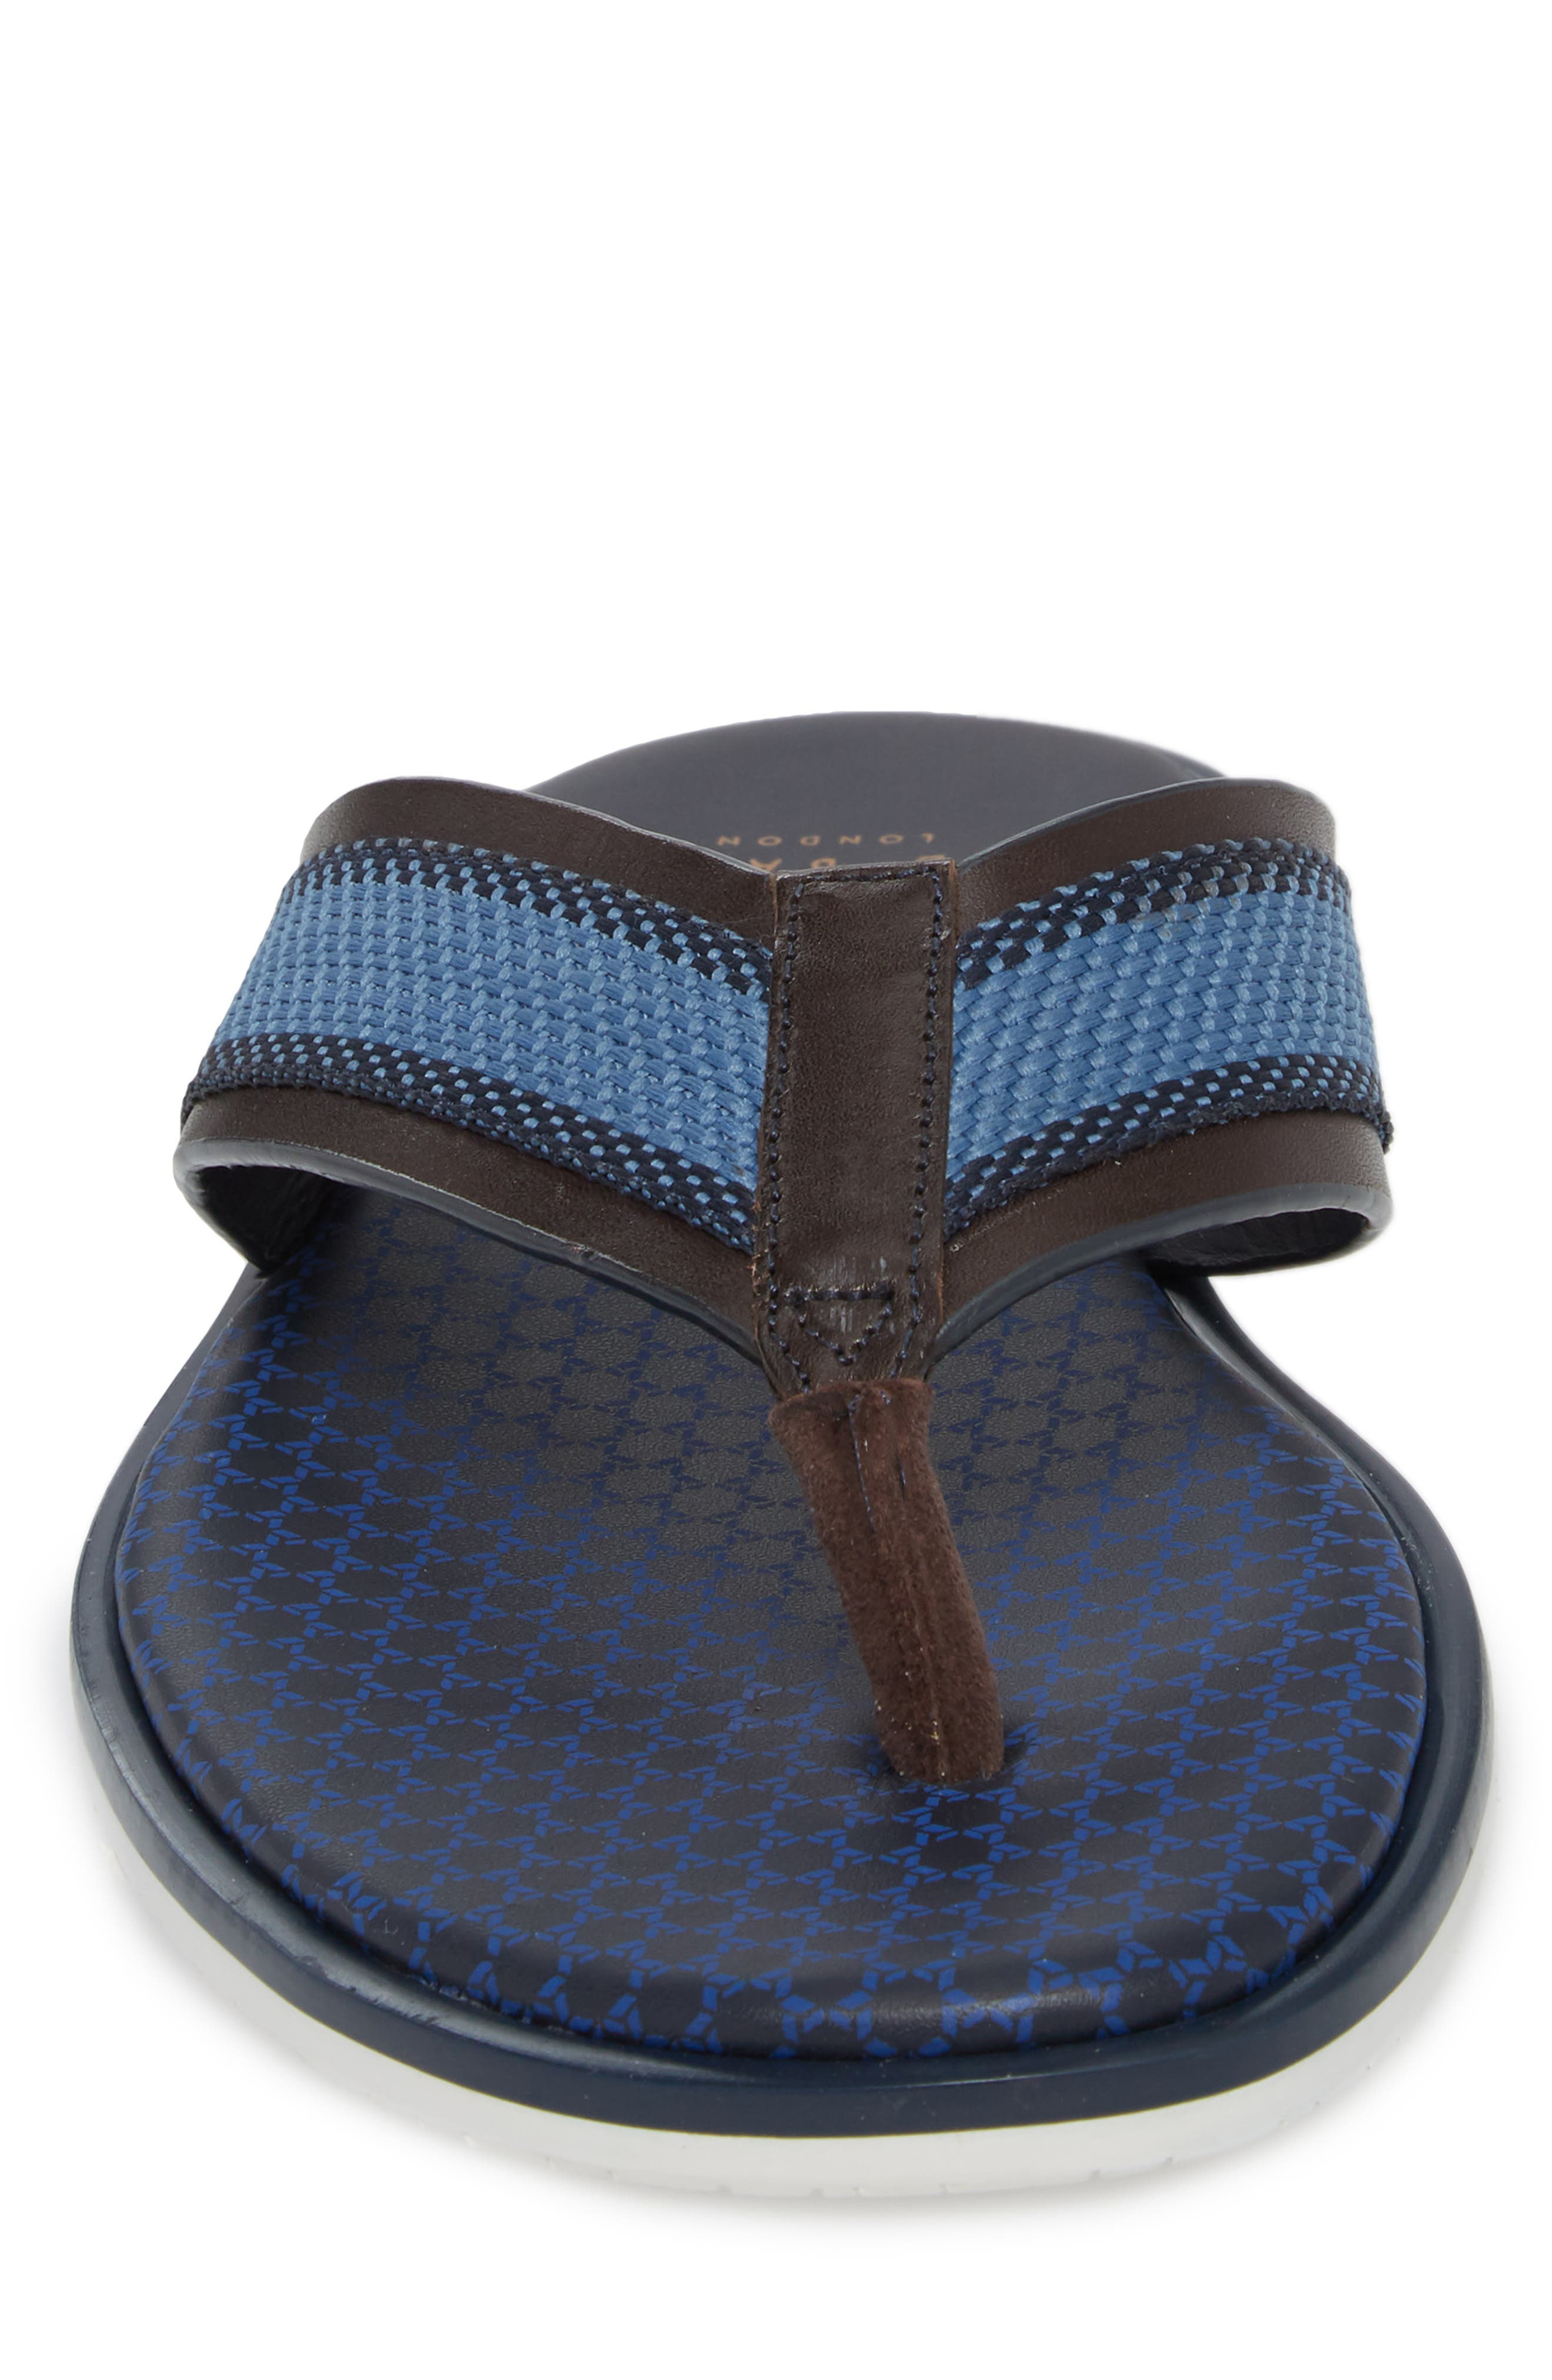 Knowlun Flip Flop,                             Alternate thumbnail 4, color,                             BROWN LEATHER/TEXTILE